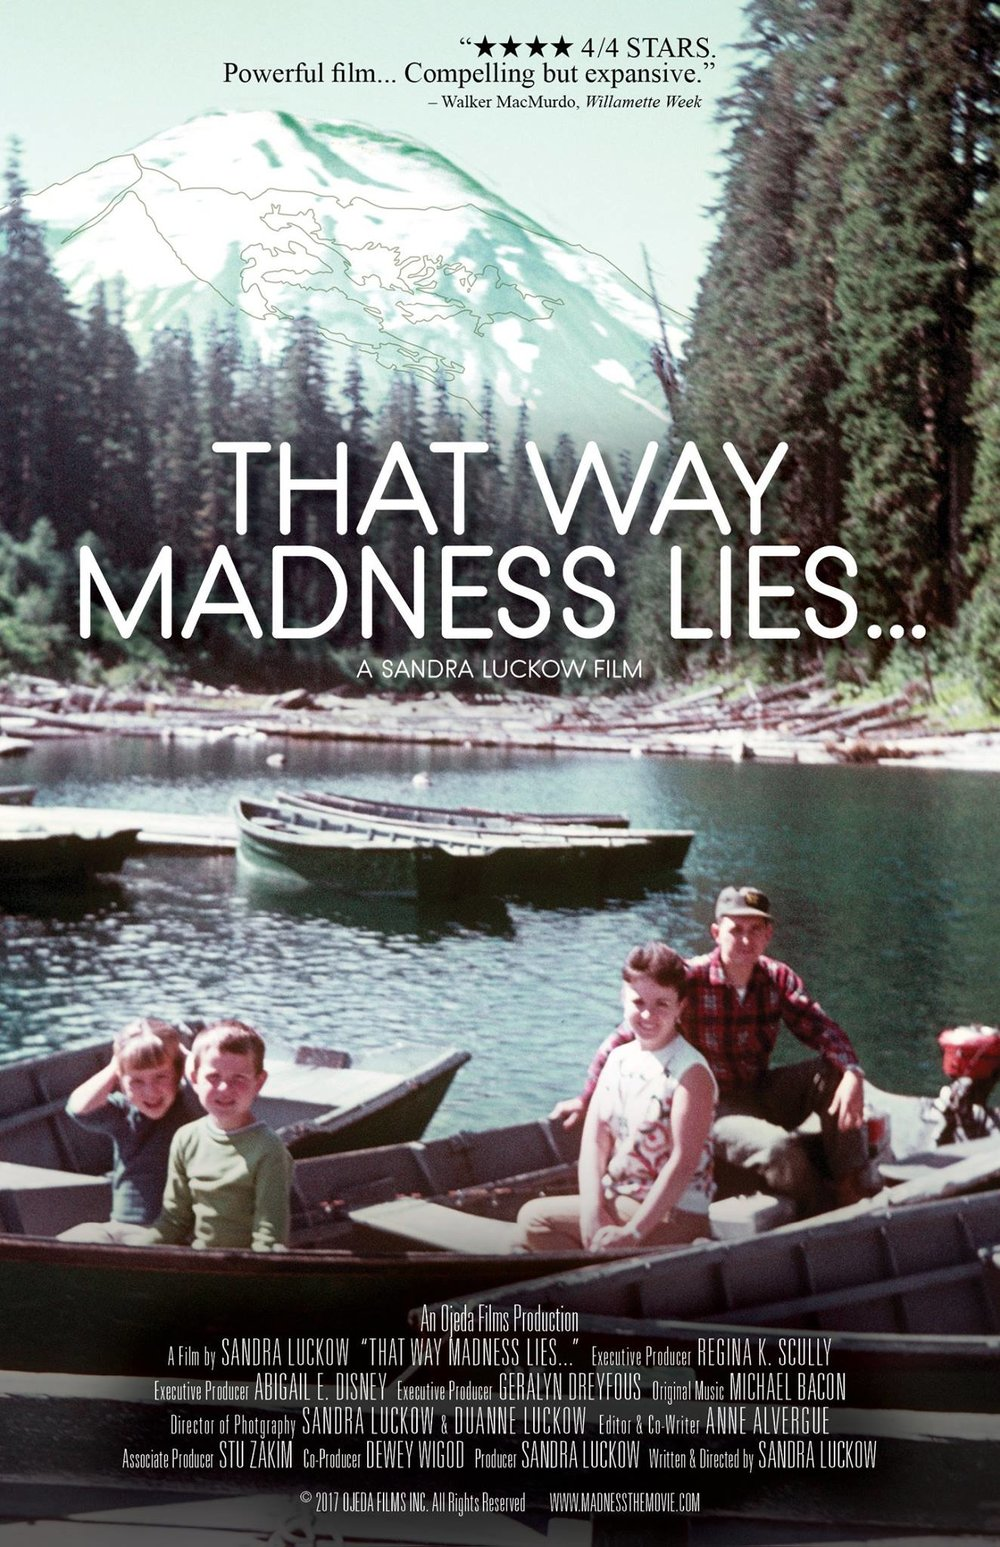 THAT WAY MADNESS LIES…, - a feature length documentary about mental illness and its effects on a family, their struggles with the mental health system and the law enforcement system, has been accepted to the Beacon Independent Film Festivaltaking place in Beacon, NY from Sept. 15 – 17, 2017.http://www.madnessthemovie.com/press.htmlhttp://beaconindiefilmfest.org/